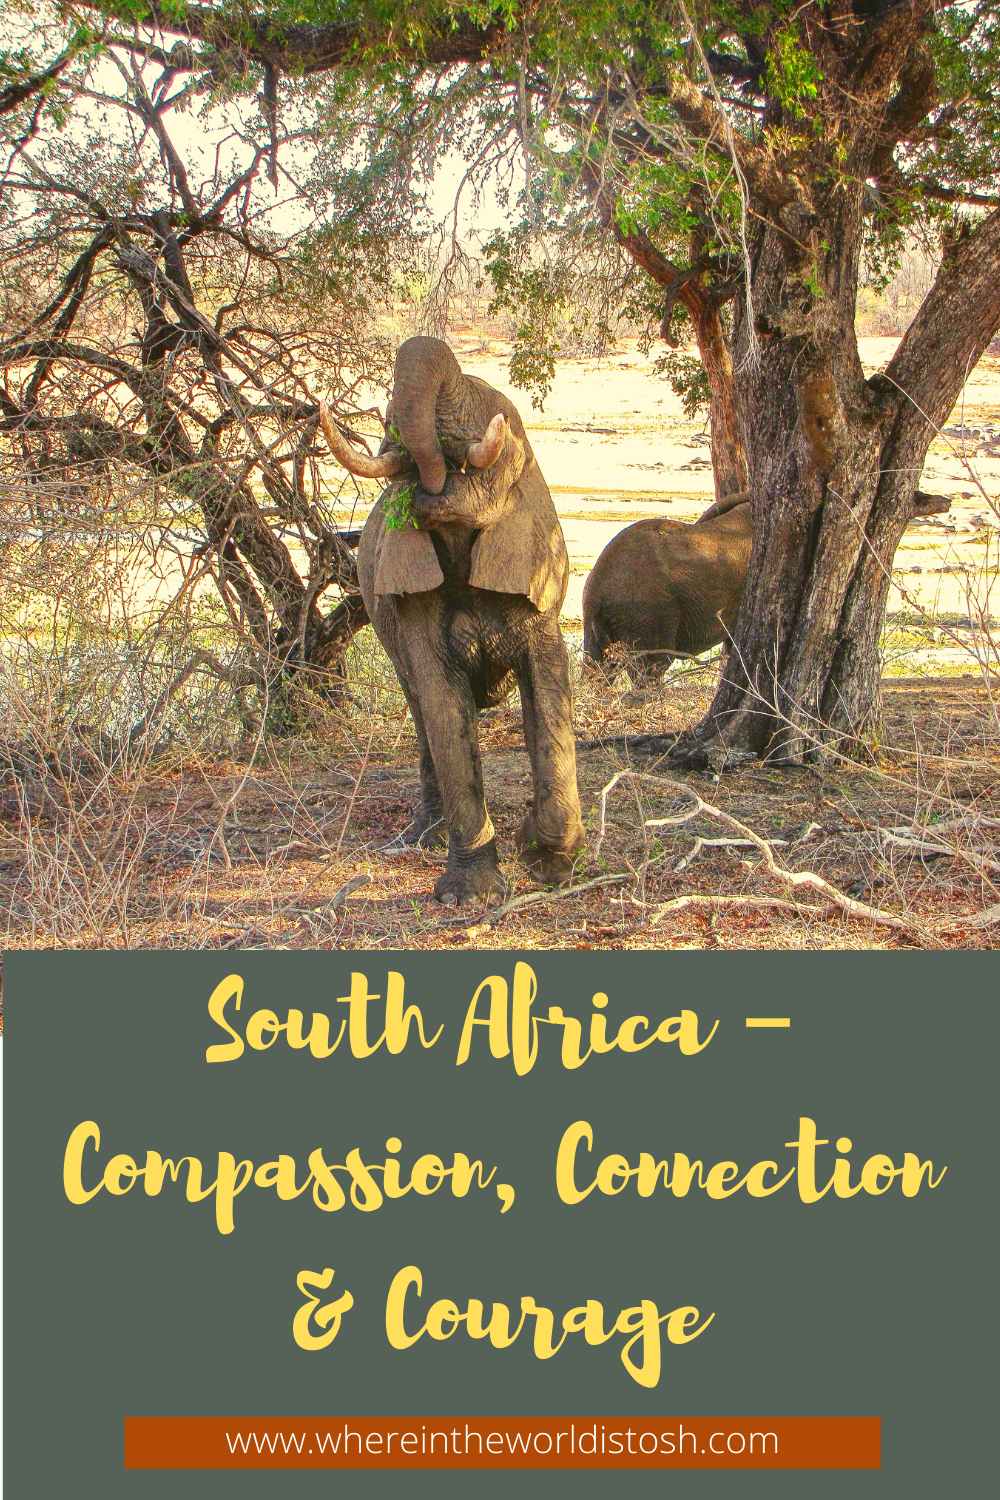 South Africa - Compassion Connection Courage